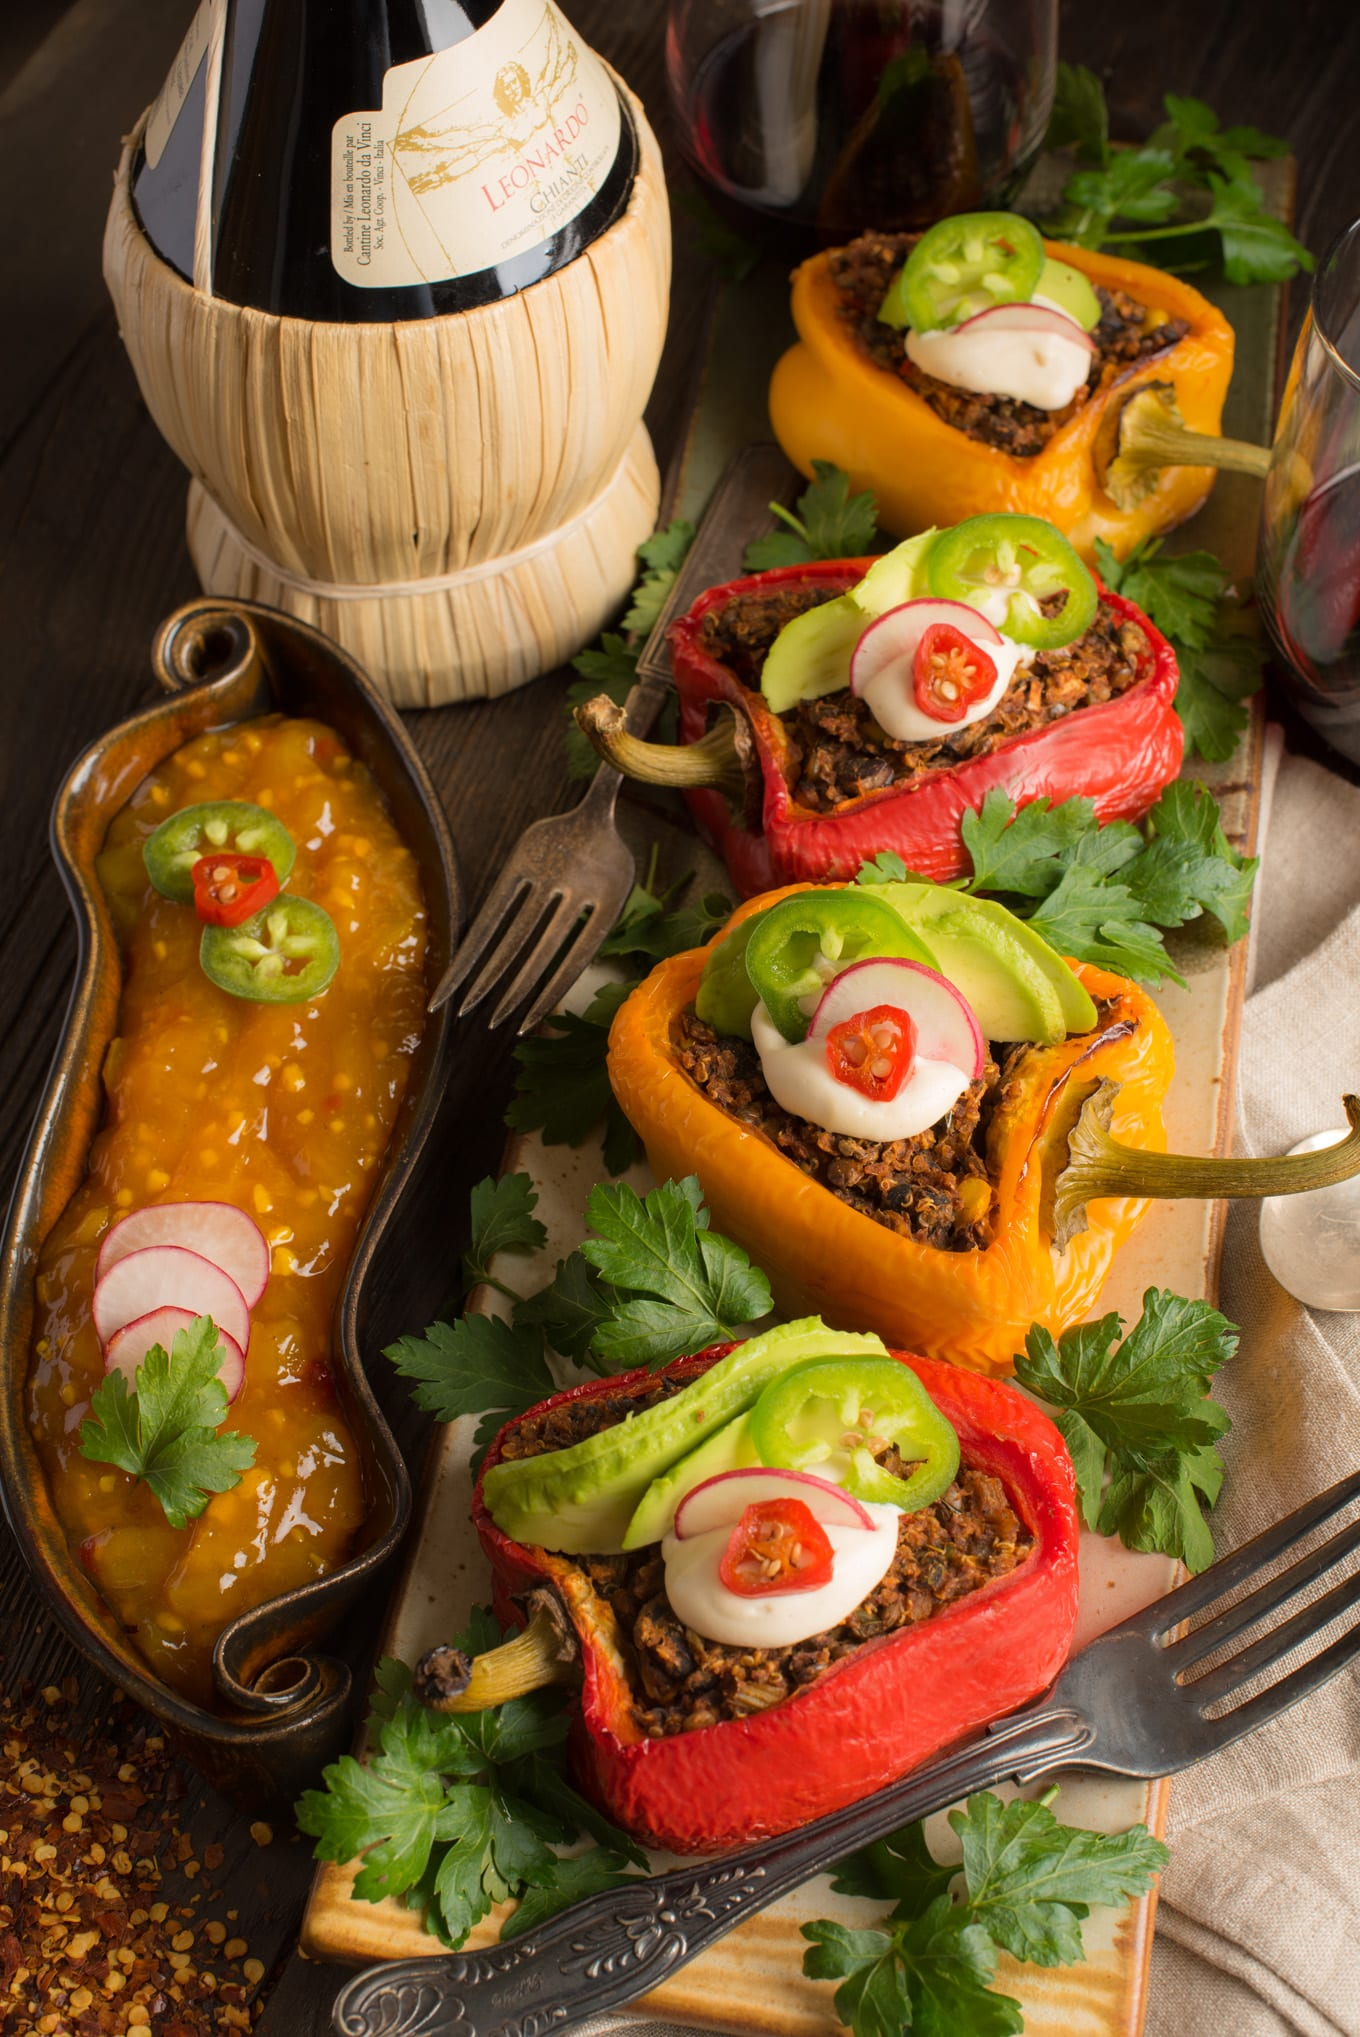 mexican-inspired stuffed peppers on tray with chutney and bottle of wine